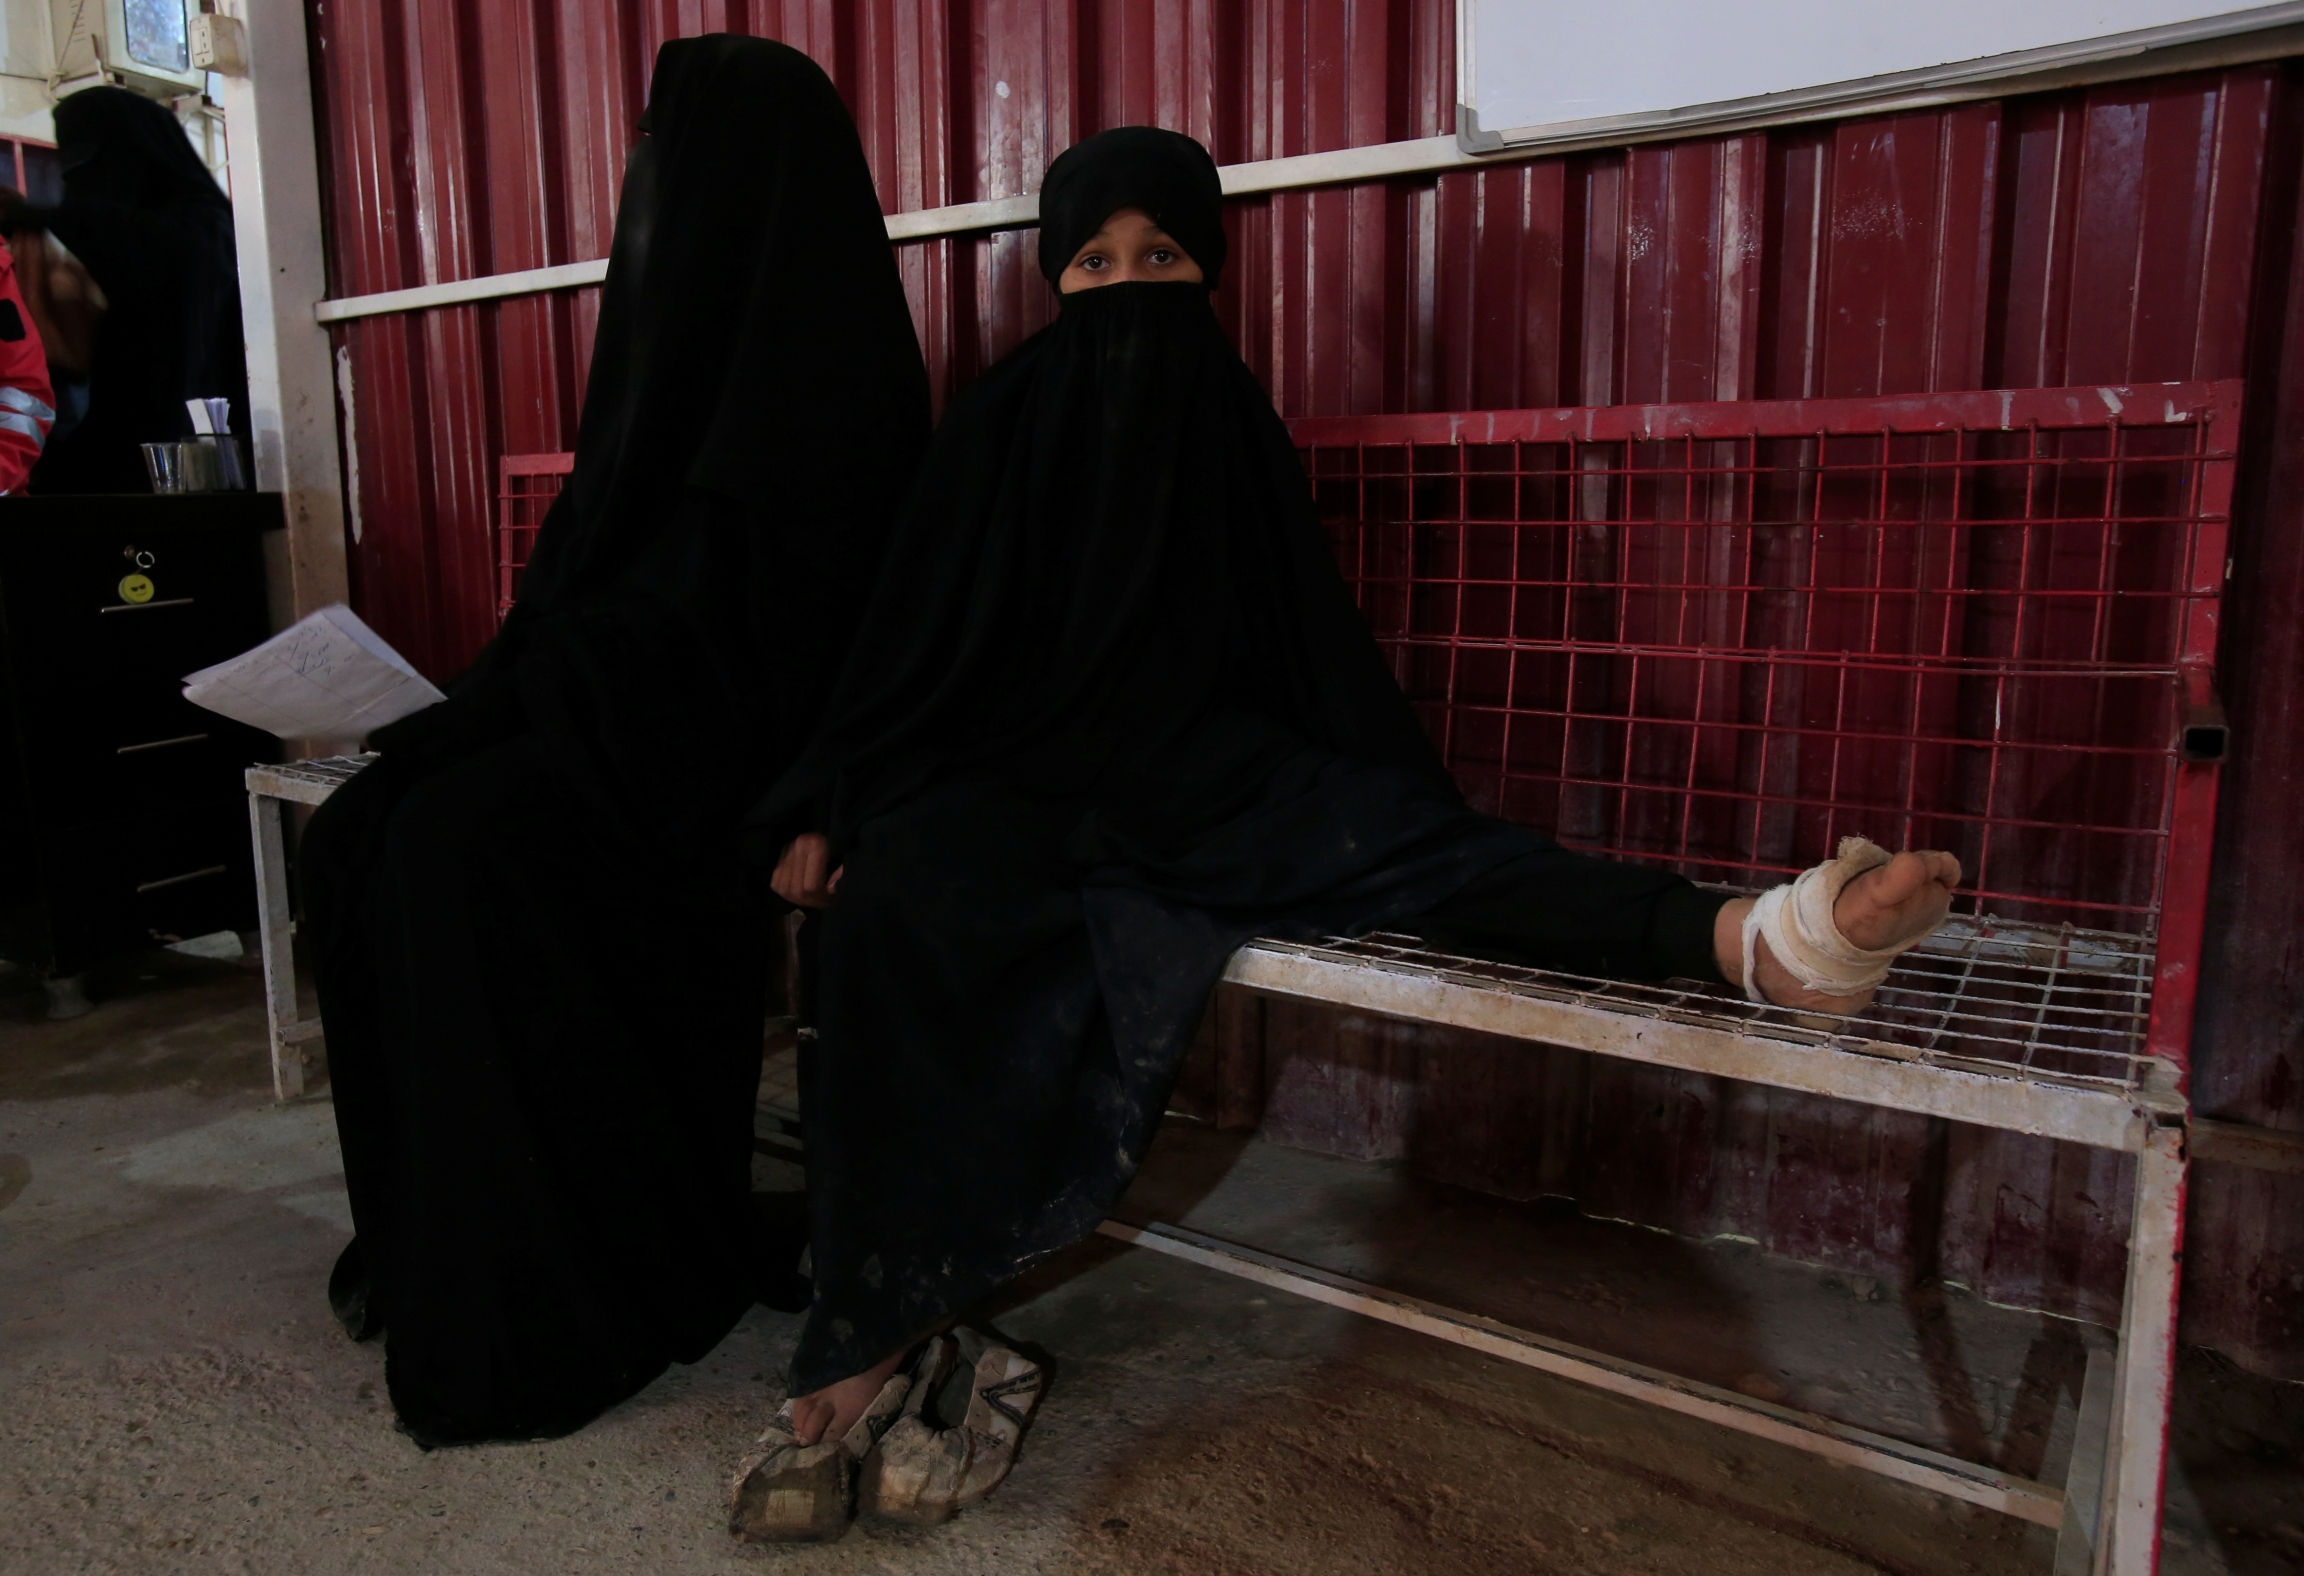 Two girls wearing black clothing sit on a bench in a clinic, one has a wounded foot wrapped in bandage